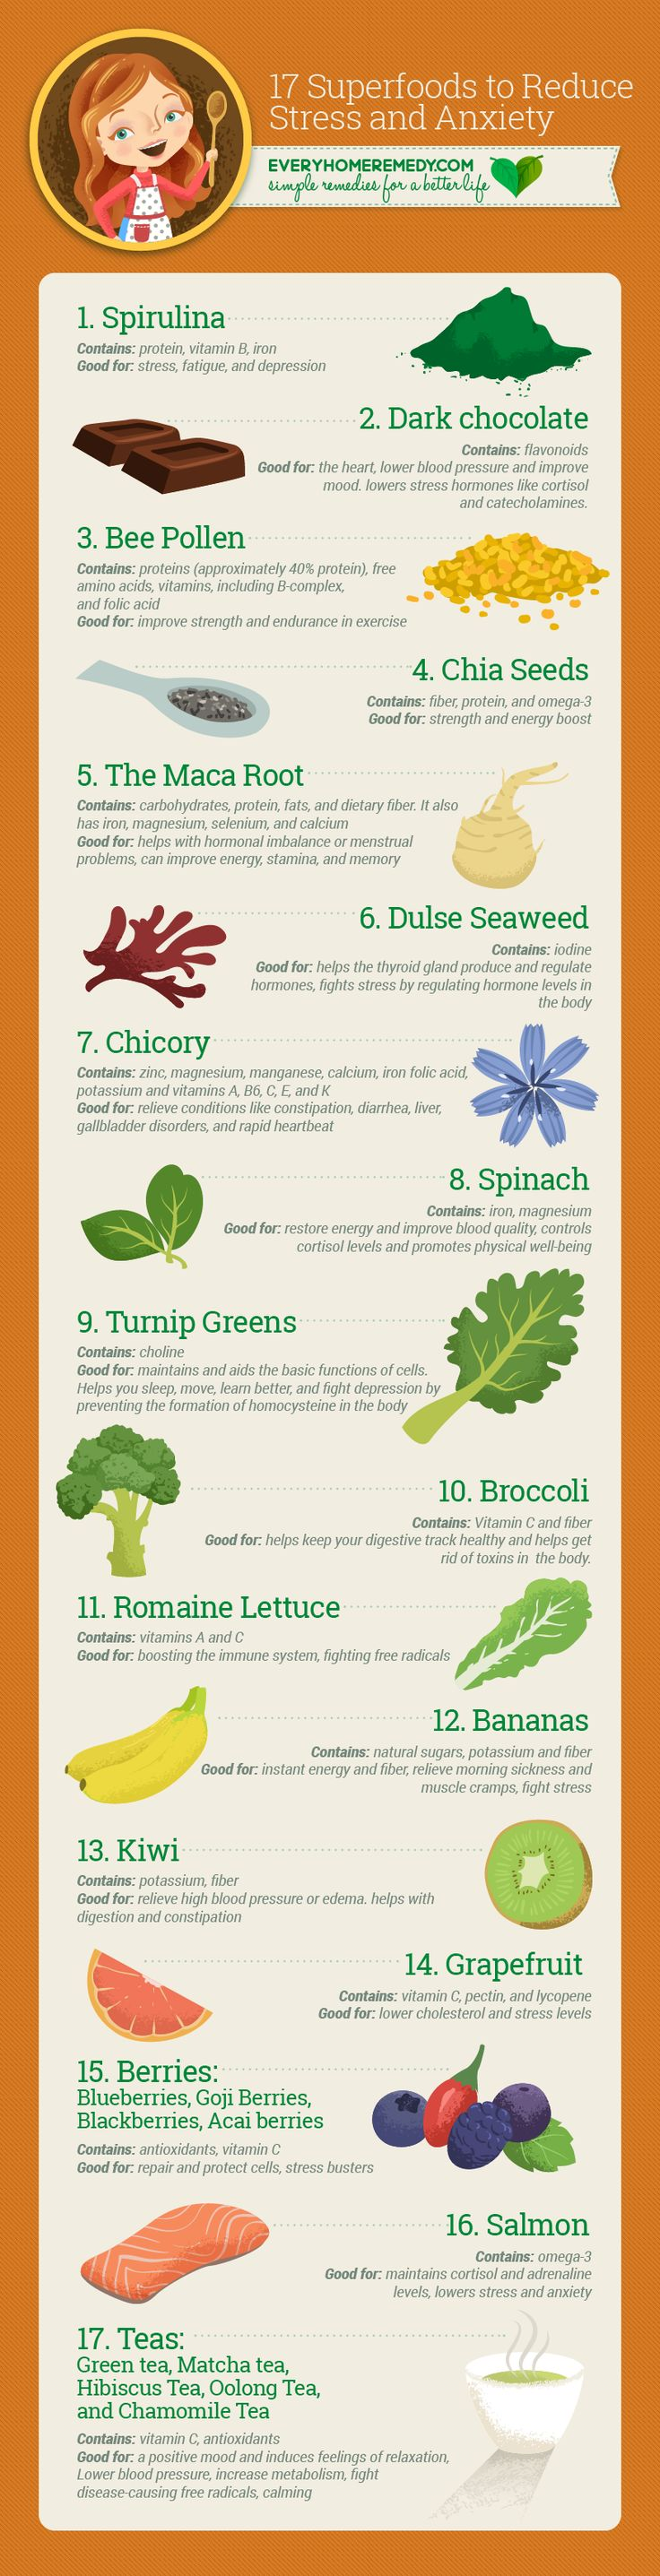 17 Superfoods to Reduce Stress and #Anxiety - Naturally